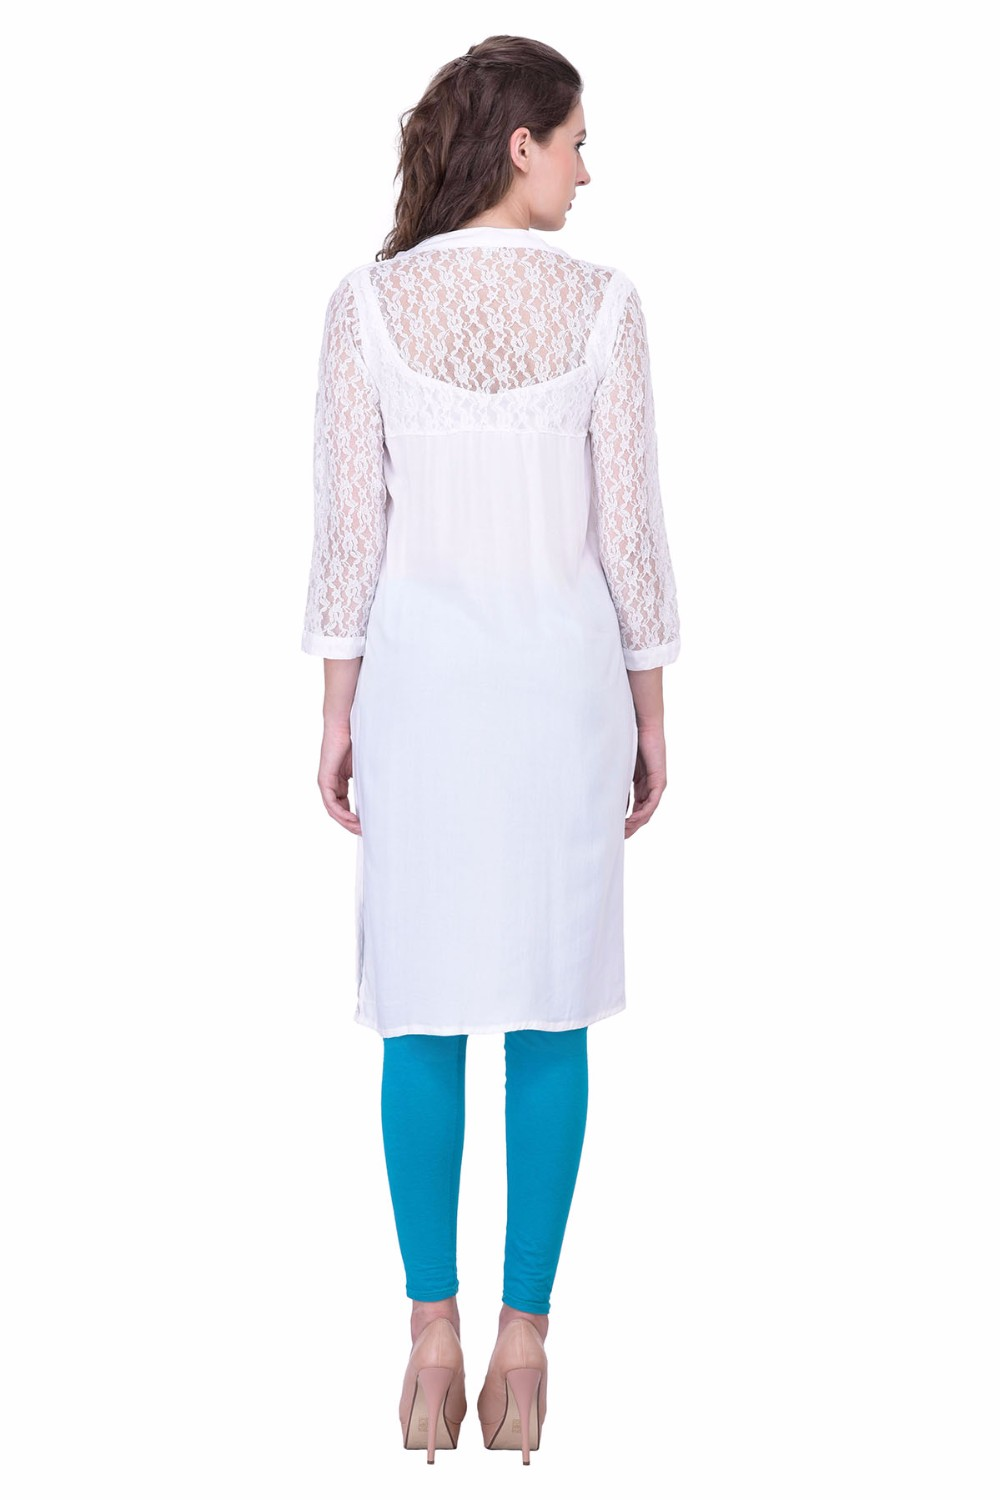 Floral Mesh Lace Dress Solid white Color Party wear Kurti Casual Dress Jaipuri Kurti Supplier Wholesale vestido	abito	robe